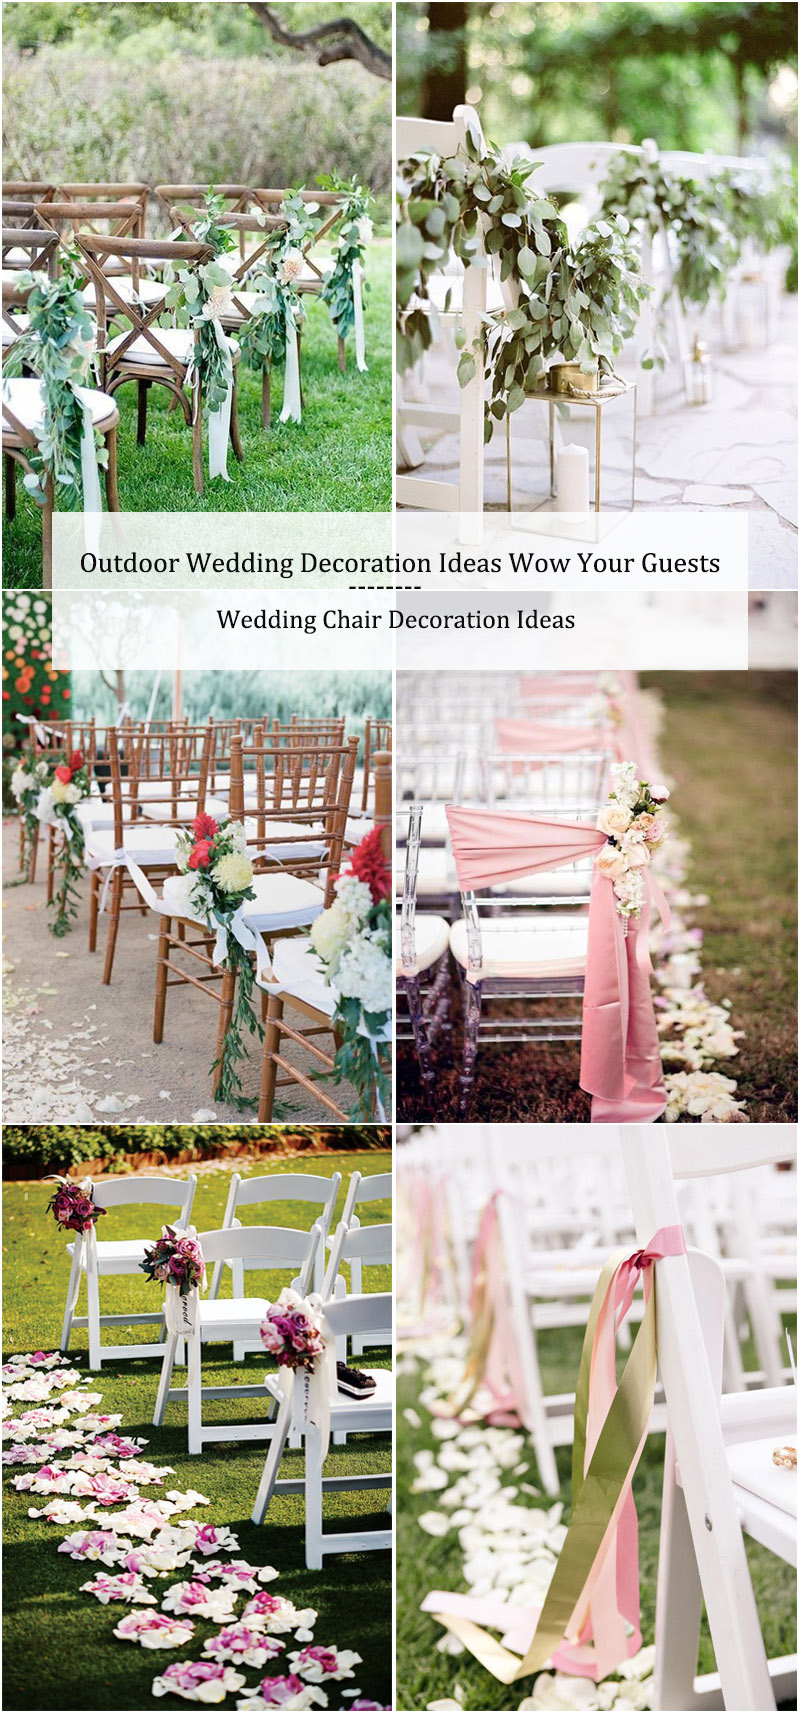 Outdoor Wedding Decoration Ideas-Wedding Chair Decoration Ideas